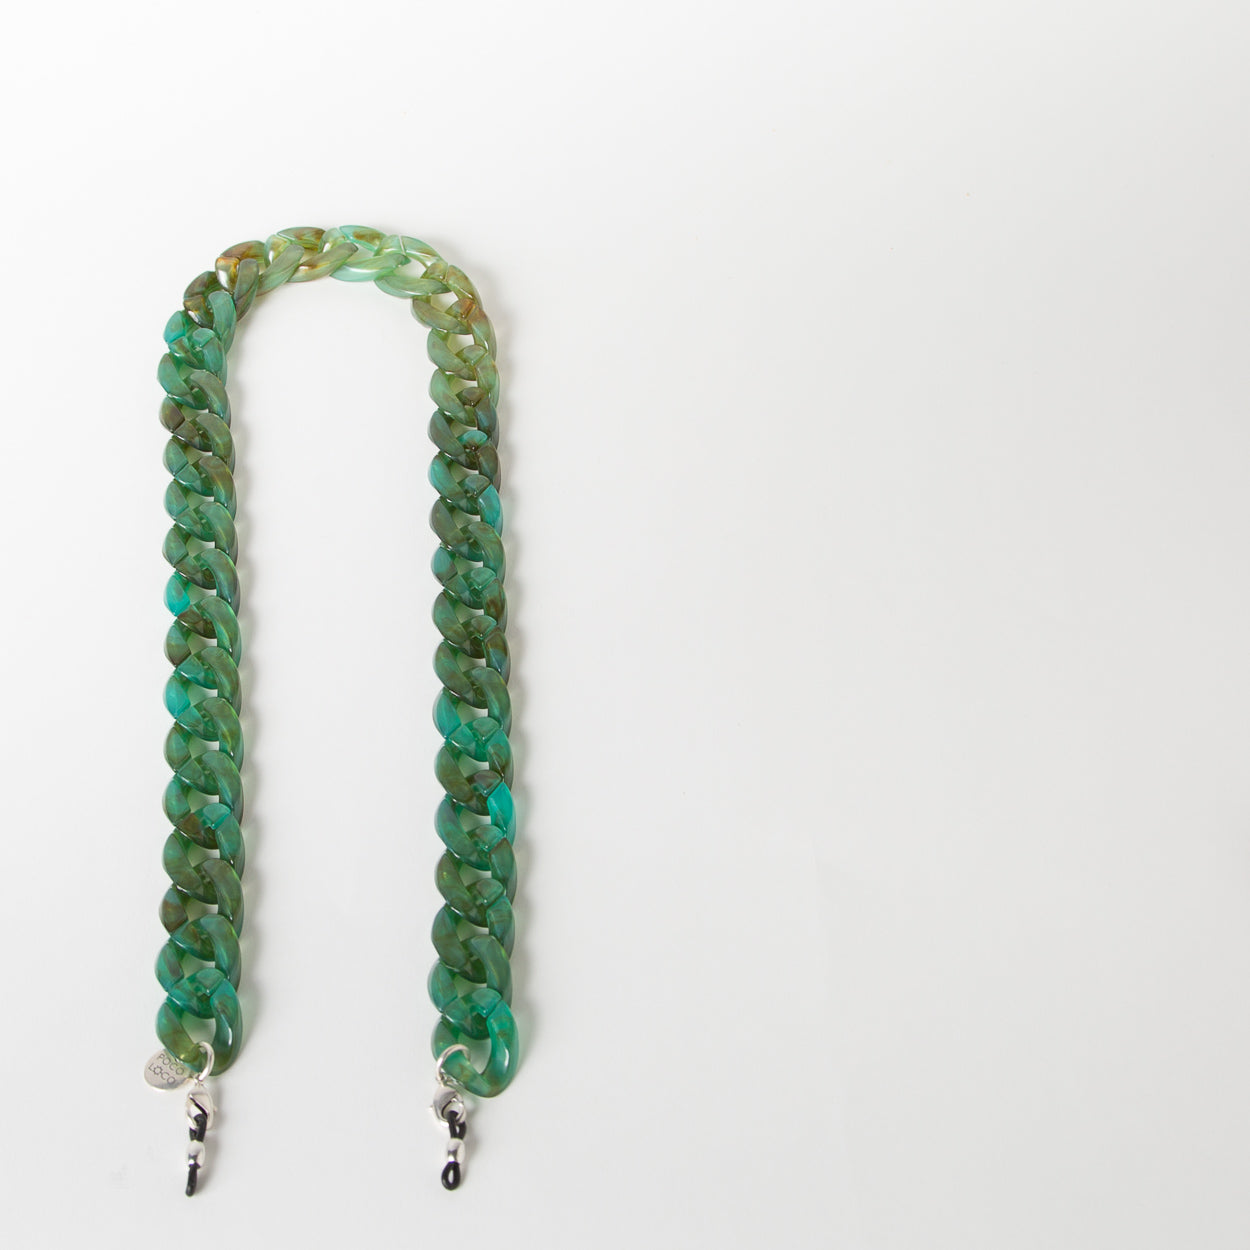 eyewear accessory in green chain by SpecSet at Secret Location